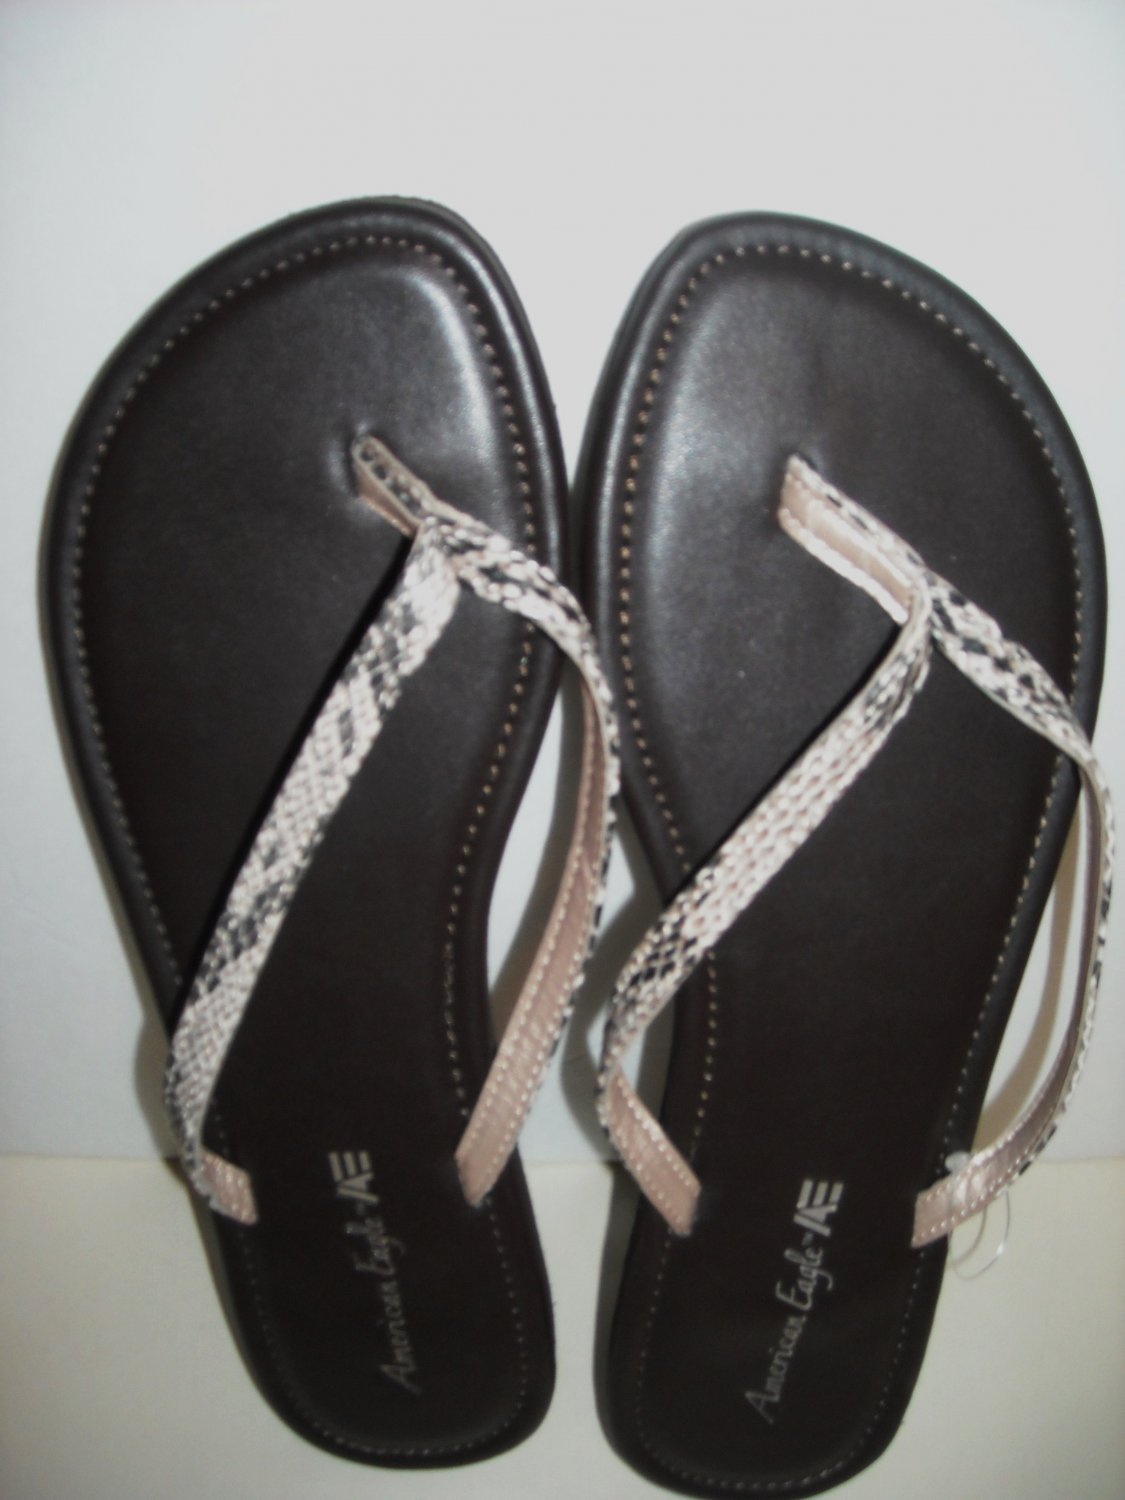 AMERICAN EAGLE FLIP FLOPS SIZE 10 (NEW)